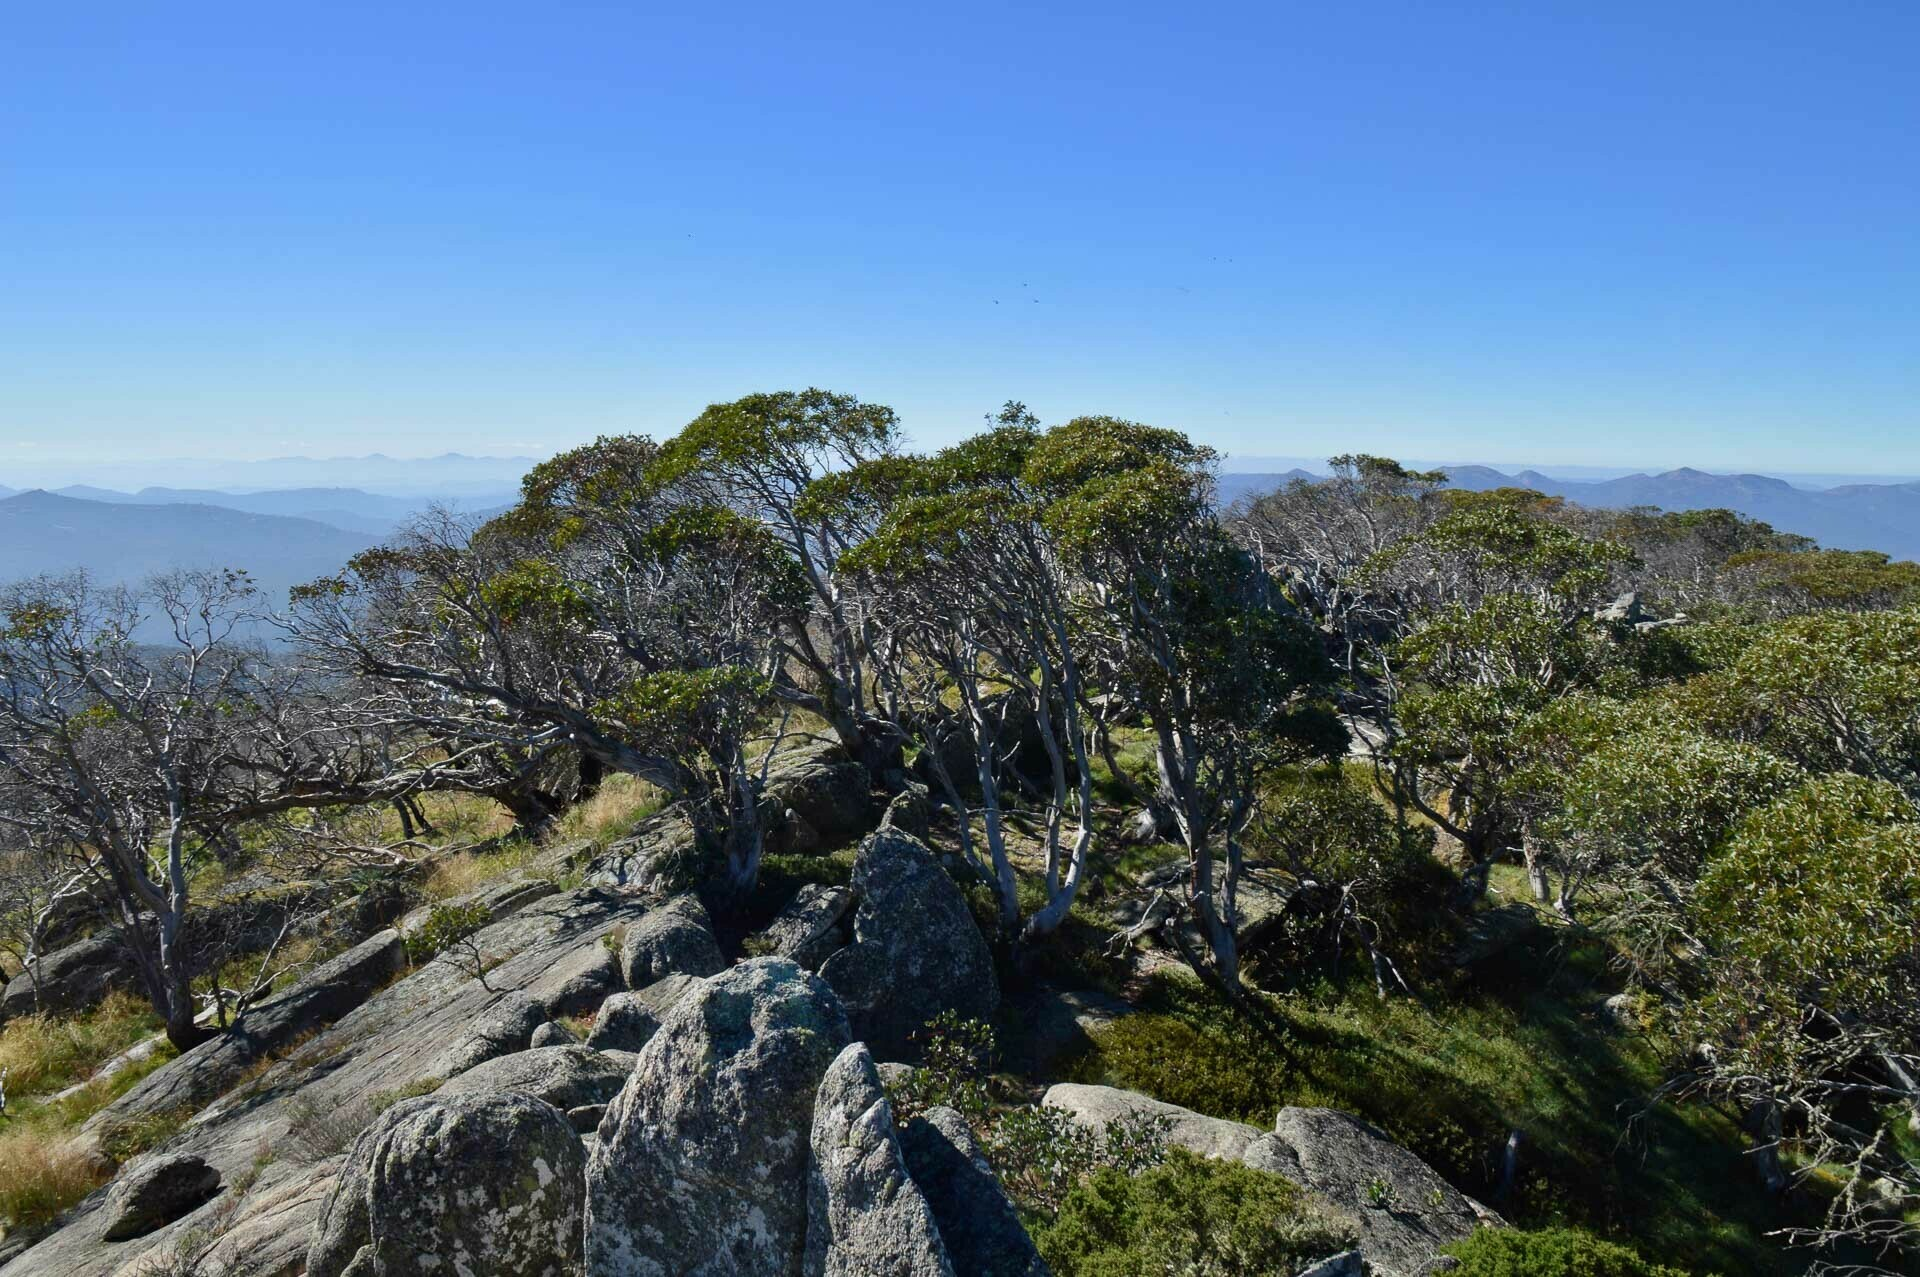 Snow gums and granite boulders on the Mt Gingera summit, Fast & Light – A Mt Gingera Overnight Hike in Under 24 Hours, Alice Wisse, ultralight, australian capital territory